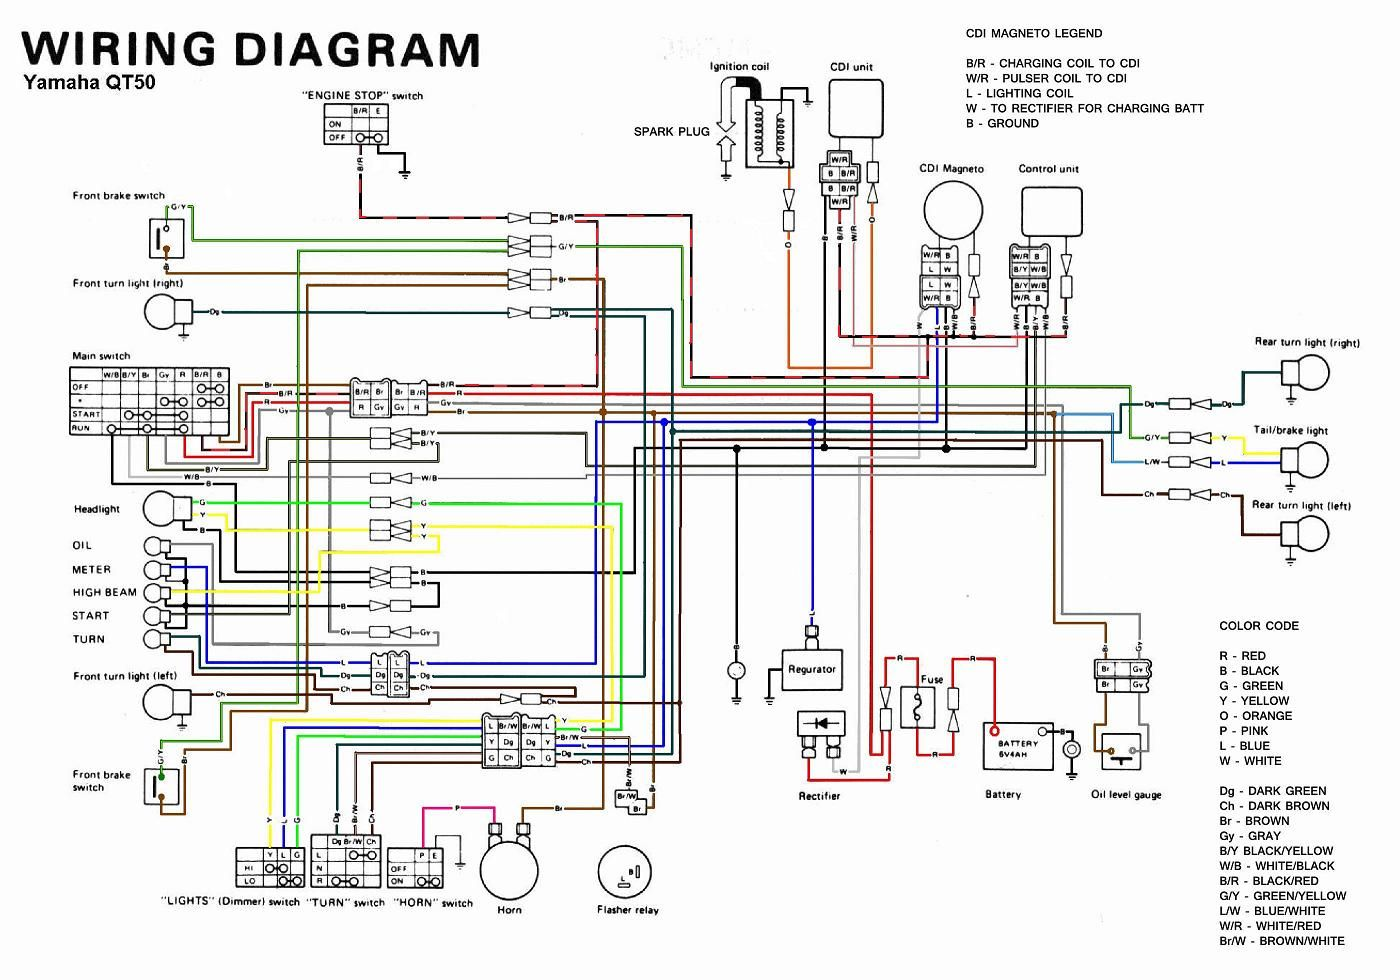 Yamaha Xs 750 Wiring Diagram | Wiring Diagrams on